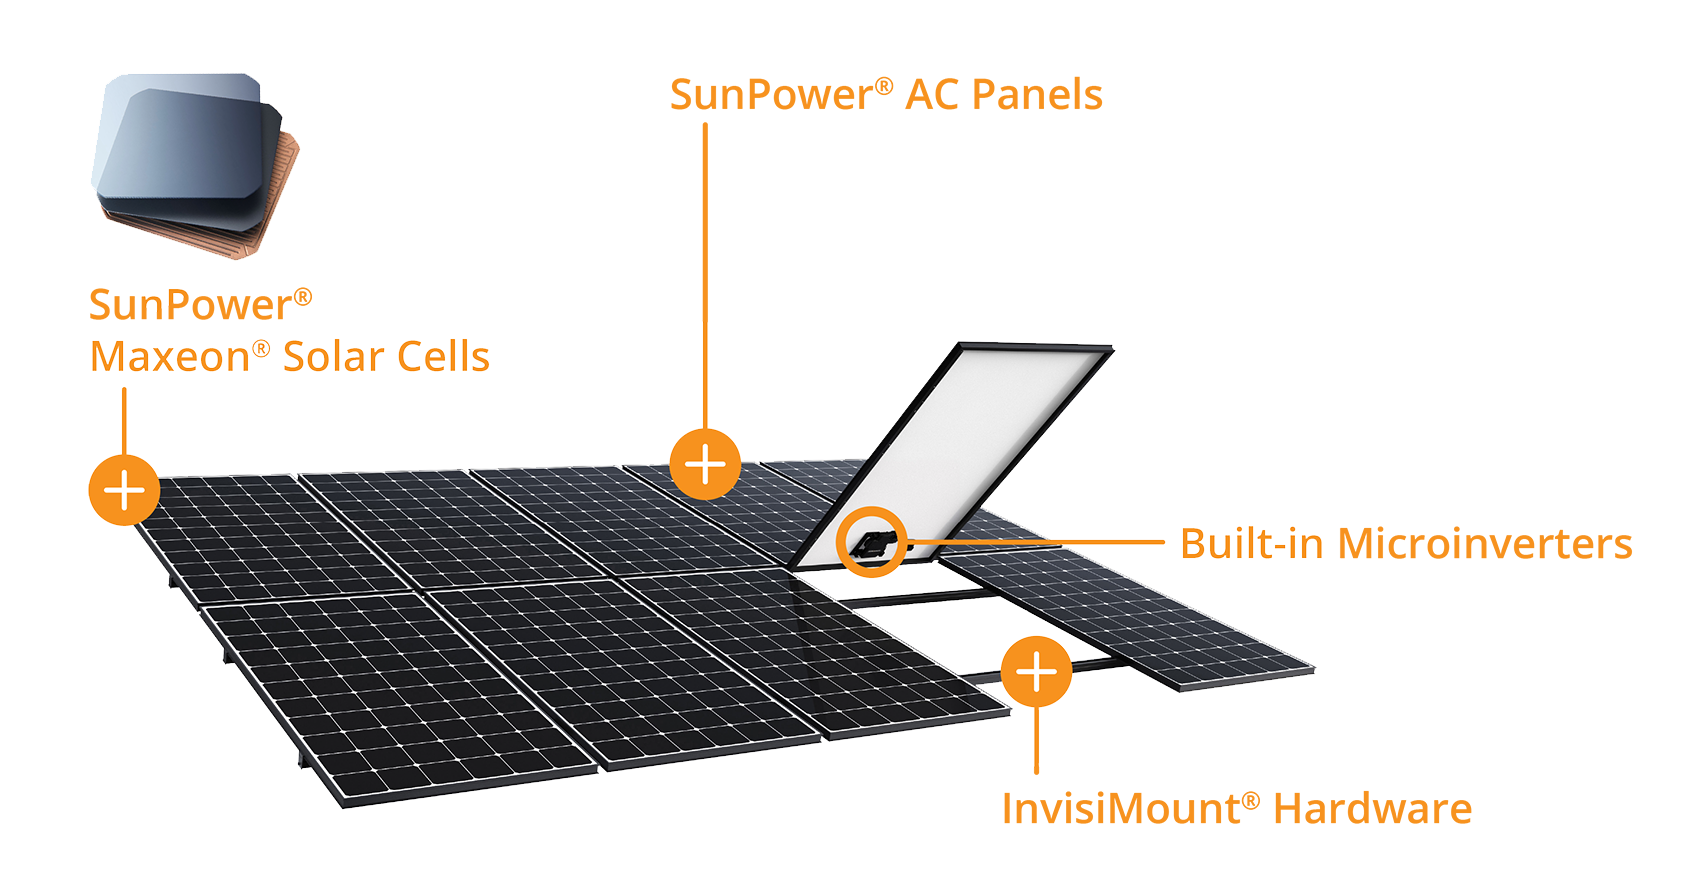 sunpower infographic showing quality design